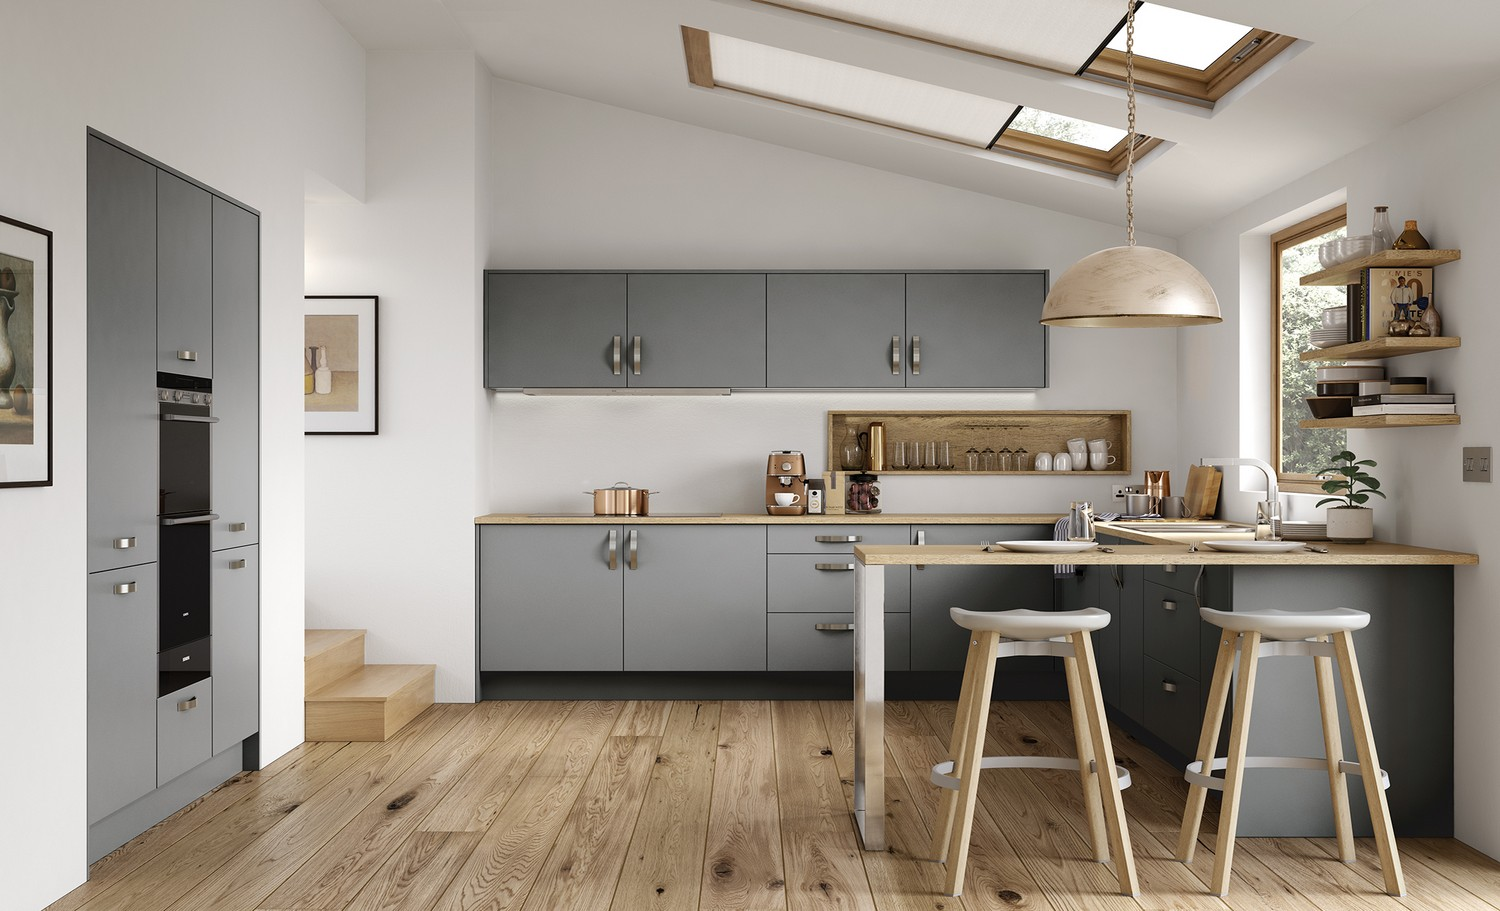 A simple grey slab door with a unique double height oven and large stainless-steel handles have been used here to create a quirky kitchen for our client's new rear extension in Kirkby, Liverpool. The kitchen doors have a matt finish combined with a wooden worktop achieve a modern edgy look. The kitchen worktops have been extended past the lower cupboards to give a seating area ideal for serving food and entertaining company while cooking. The ceramic cooking hob has been integrated into the worktop and the extraction fan has been hidden within the cupboard above.